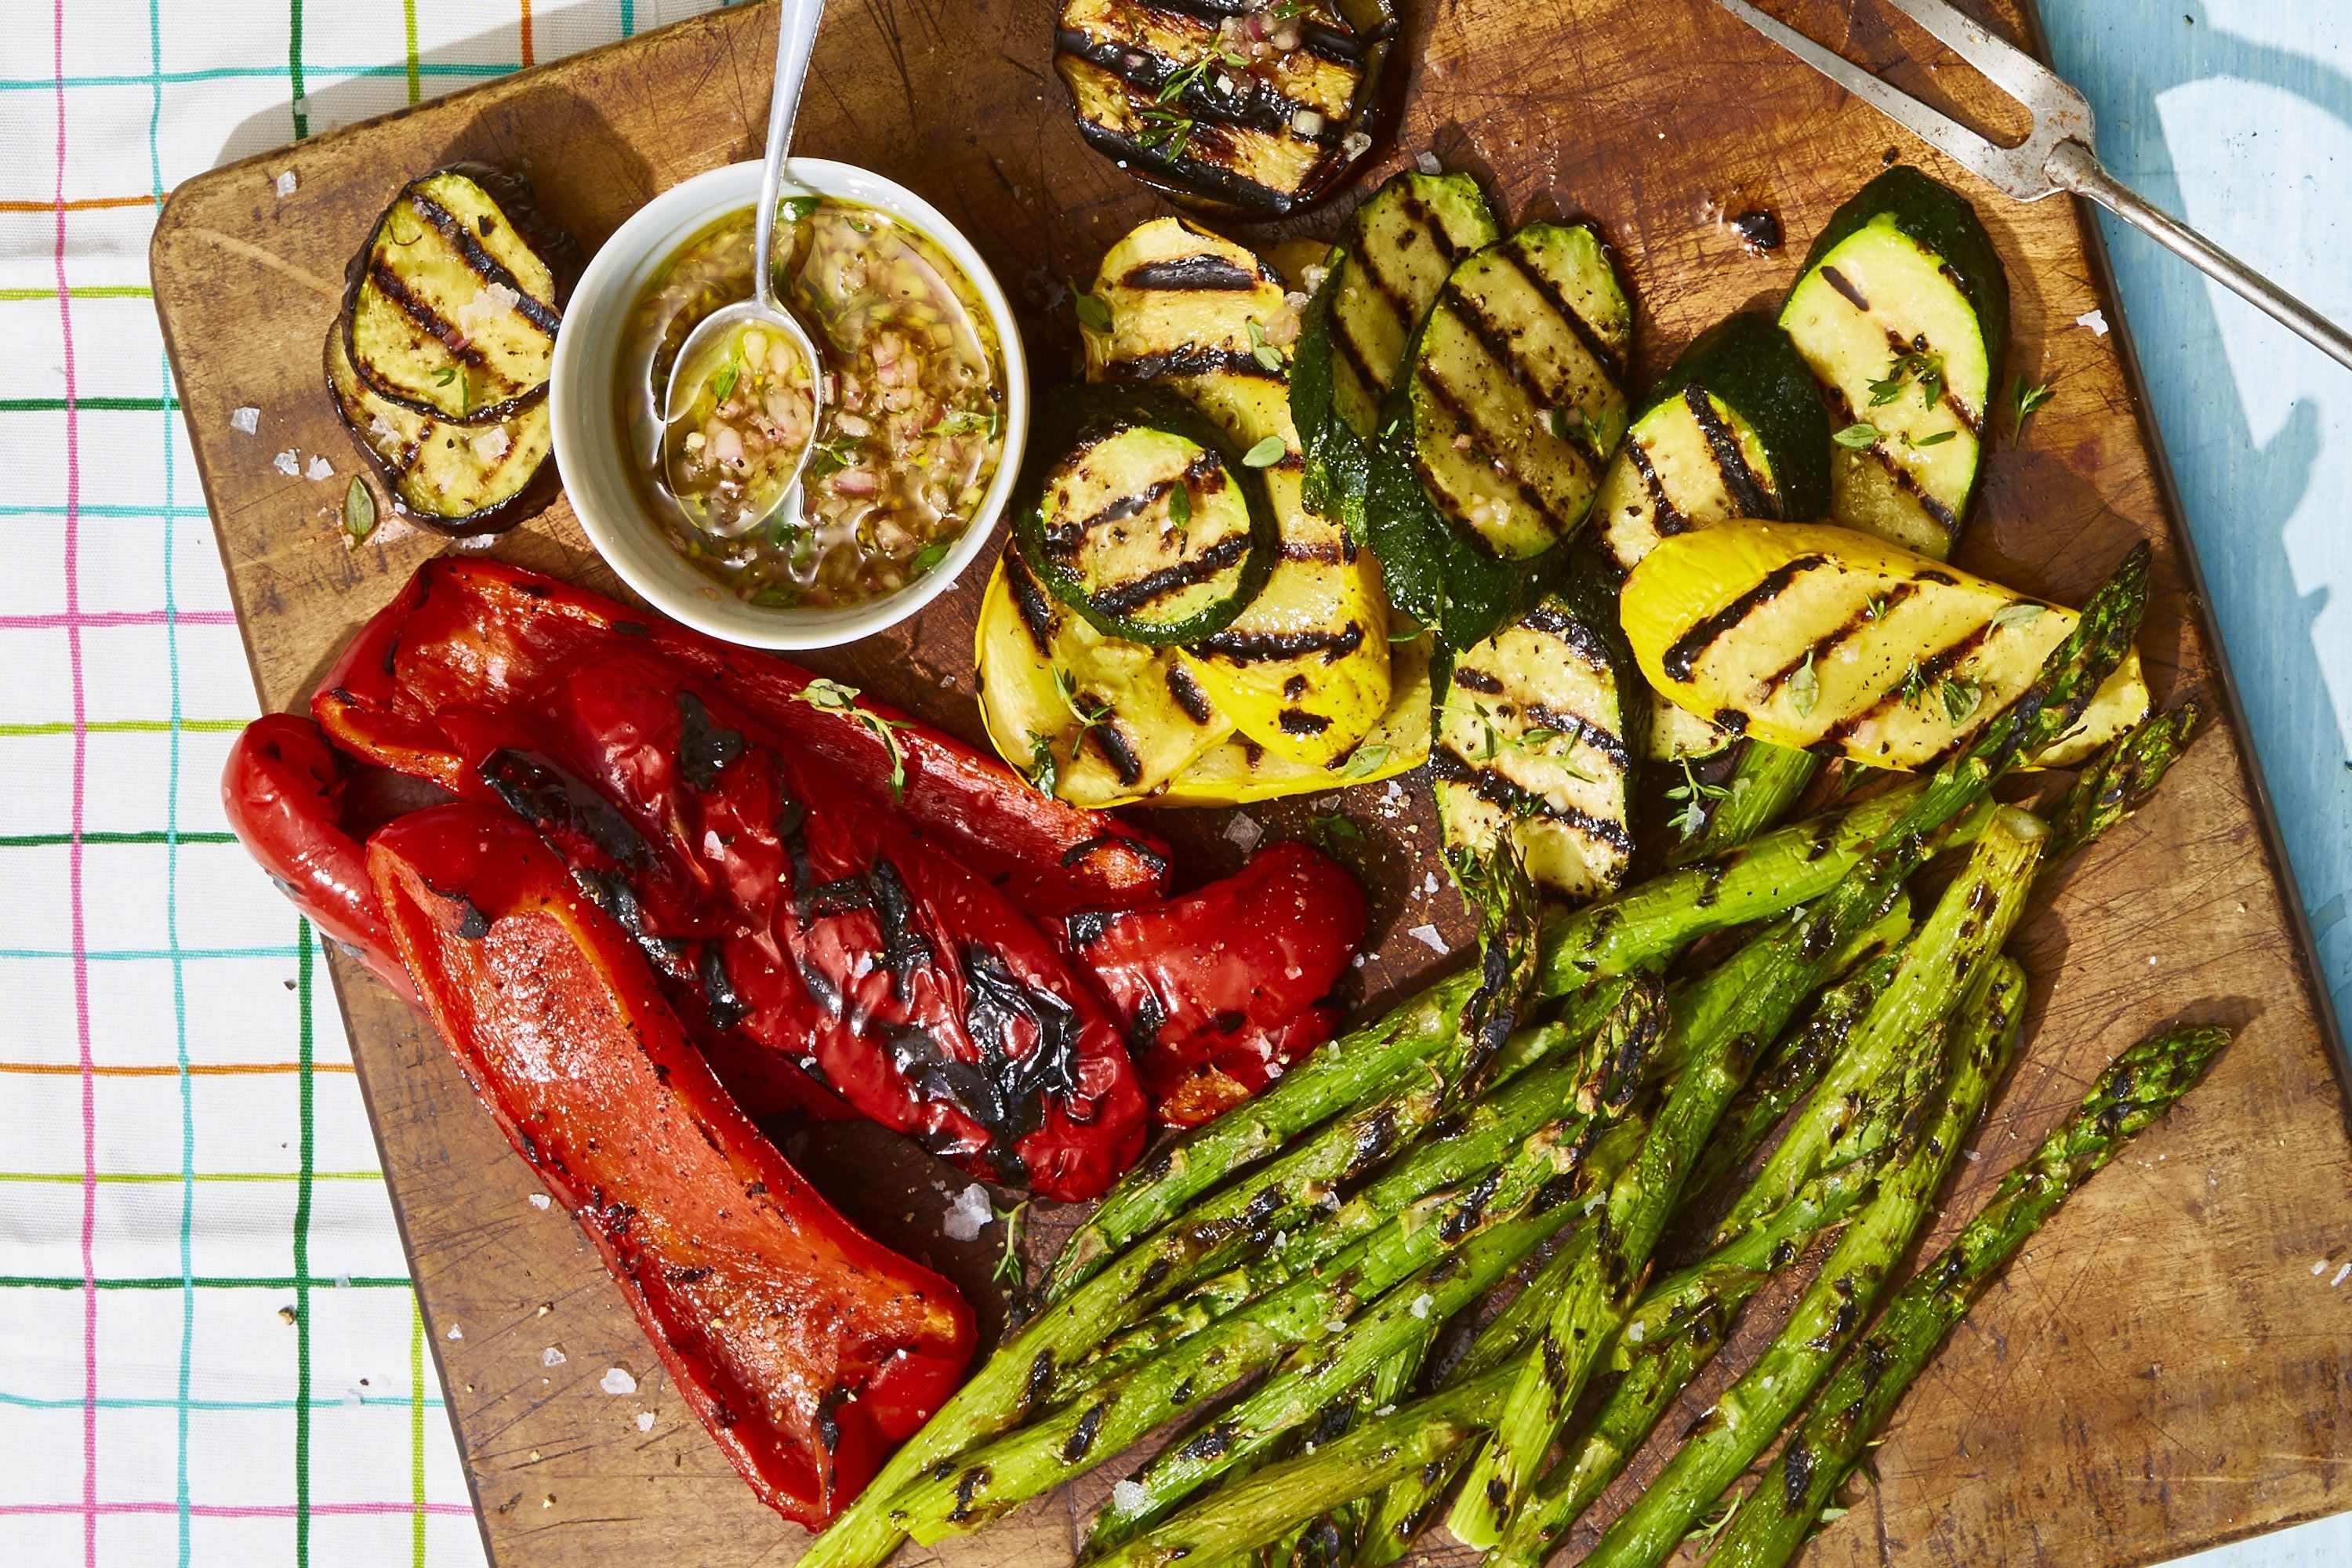 60 Best Grilling Recipes Easy Dinner Ideas To Cook On The Grill